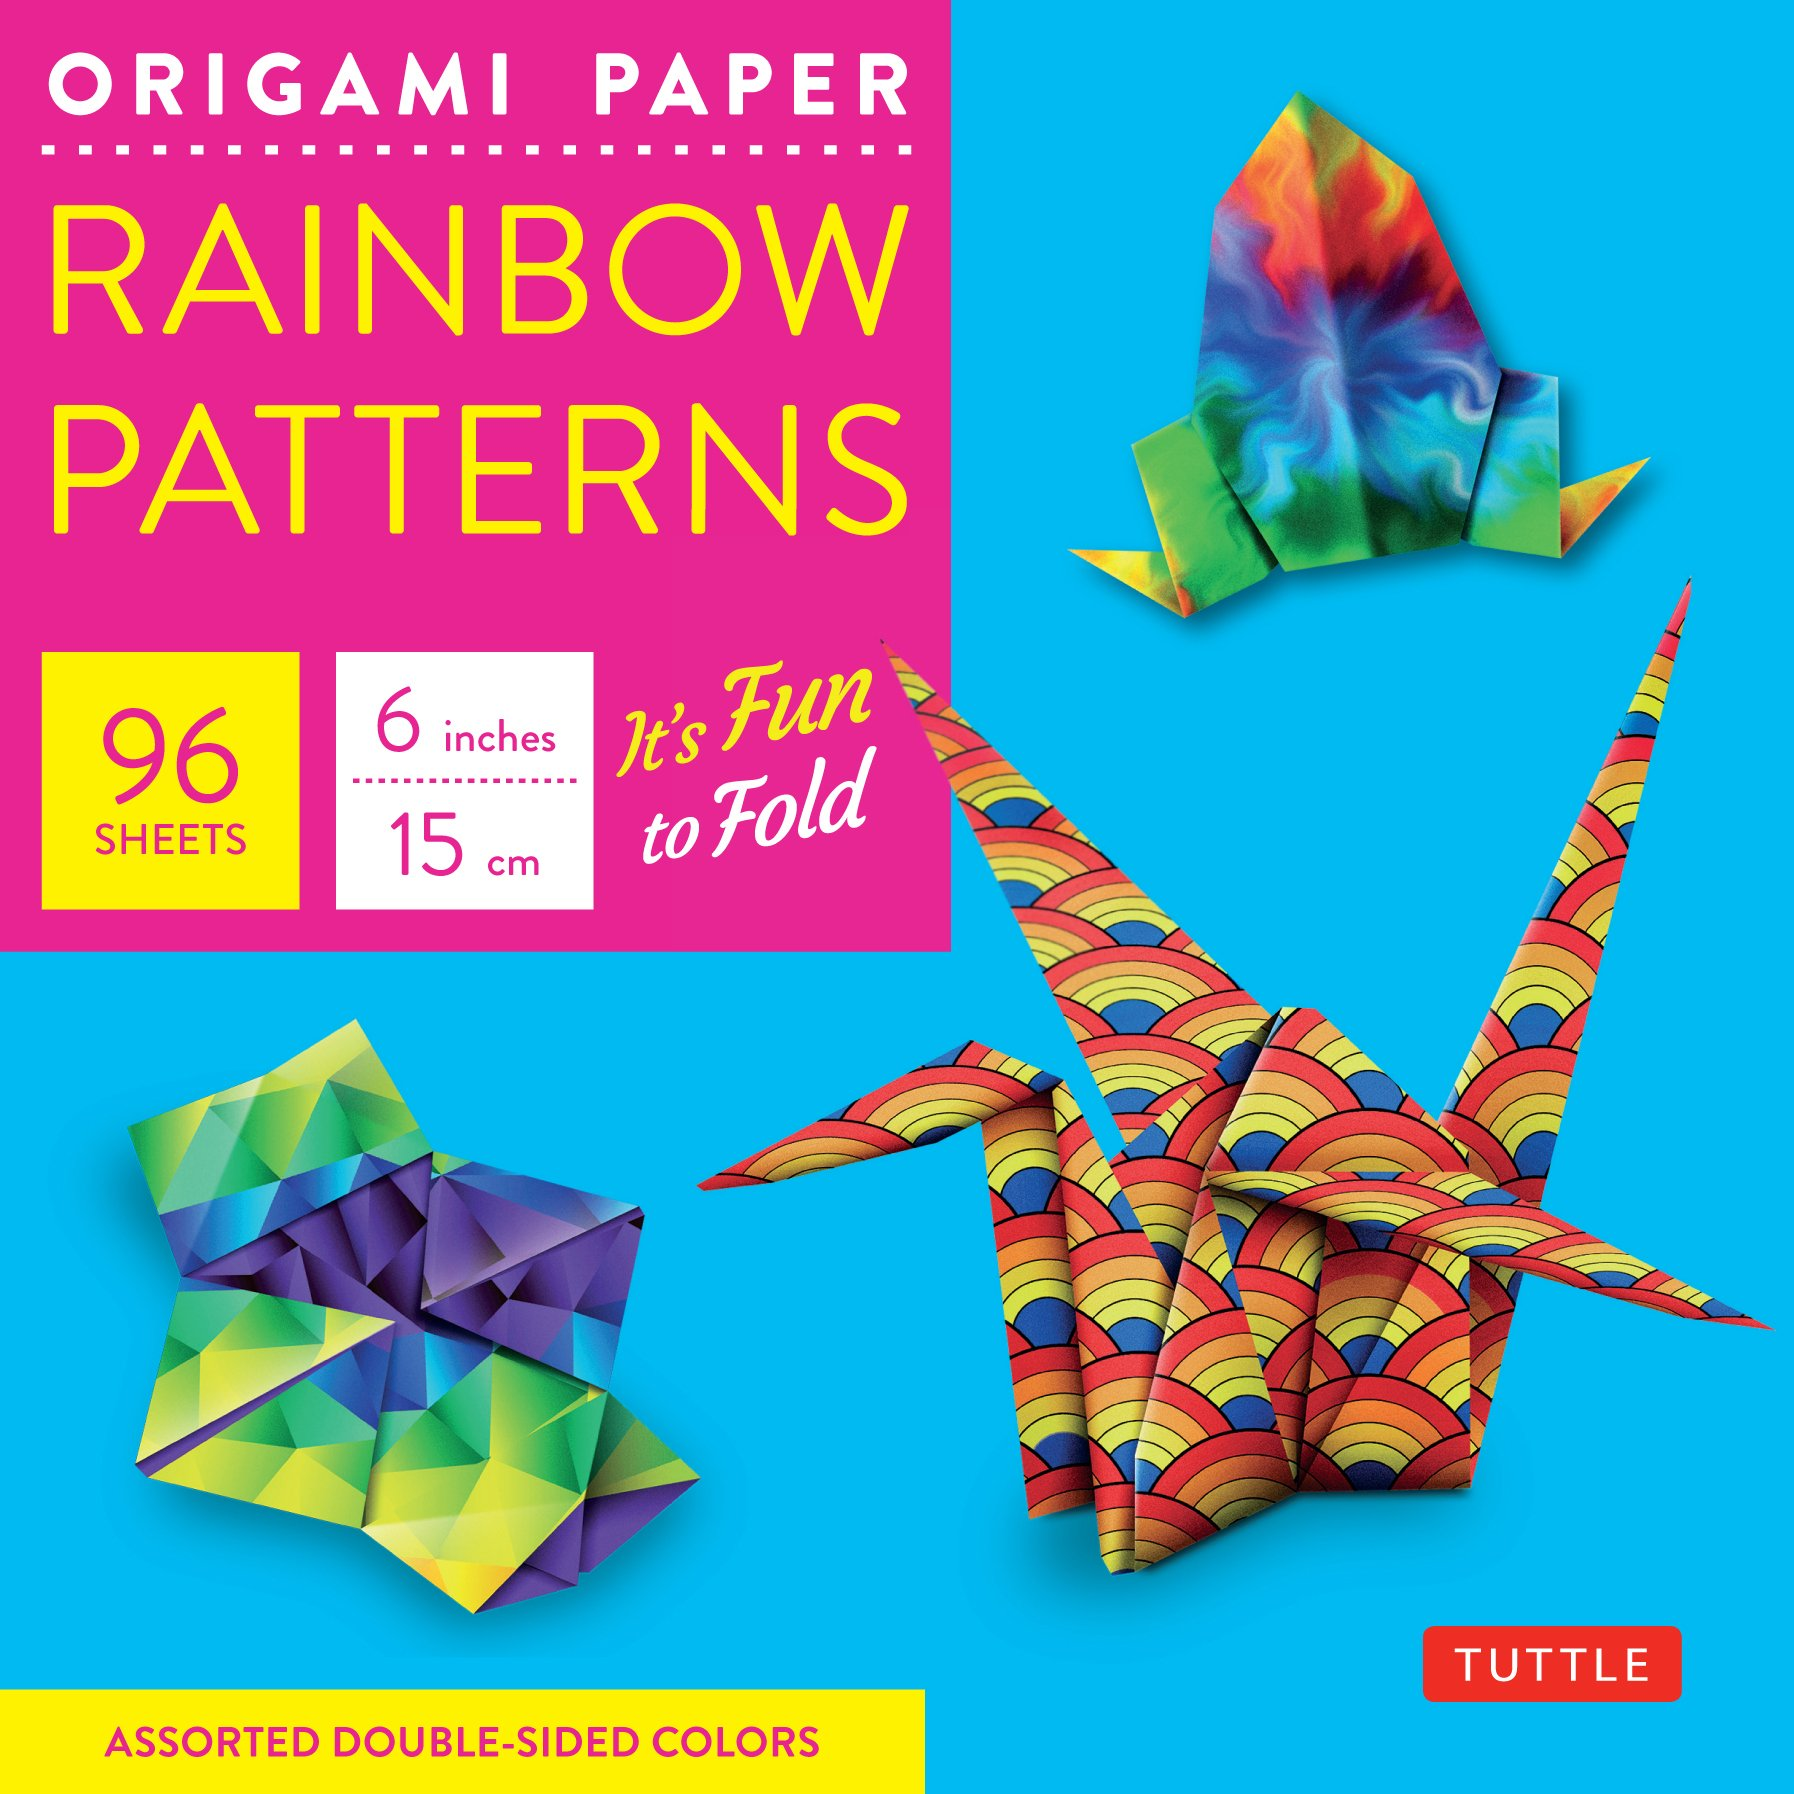 Best Rated In Origami Paper Helpful Customer Reviews Instructions For Difficult To Items Rainbow Patterns 6 Size 96 Sheets Tuttle